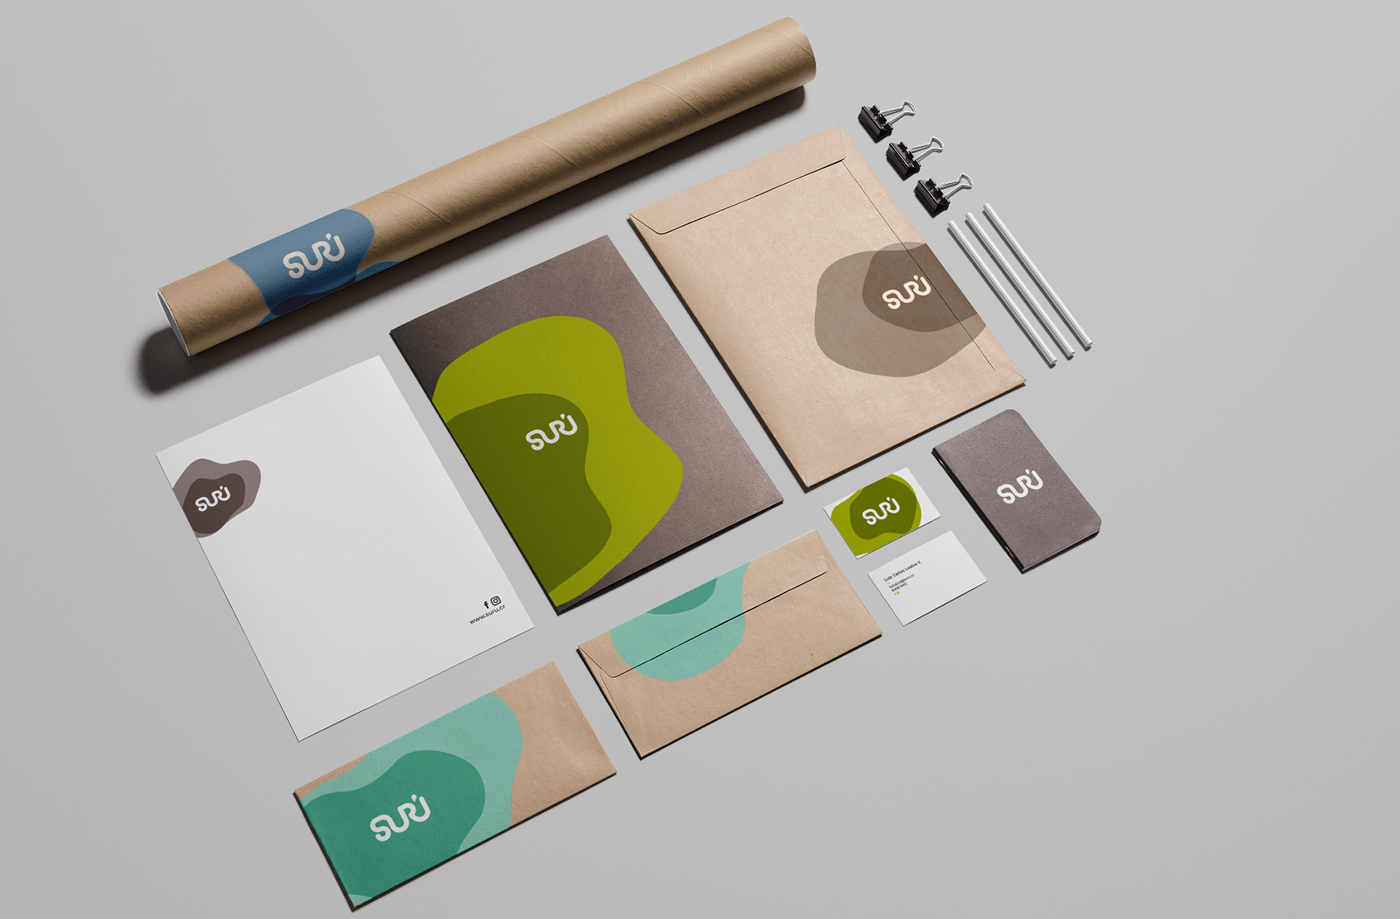 Surú is a Beautiful Commercial Ecosystem Designed by Gitanos